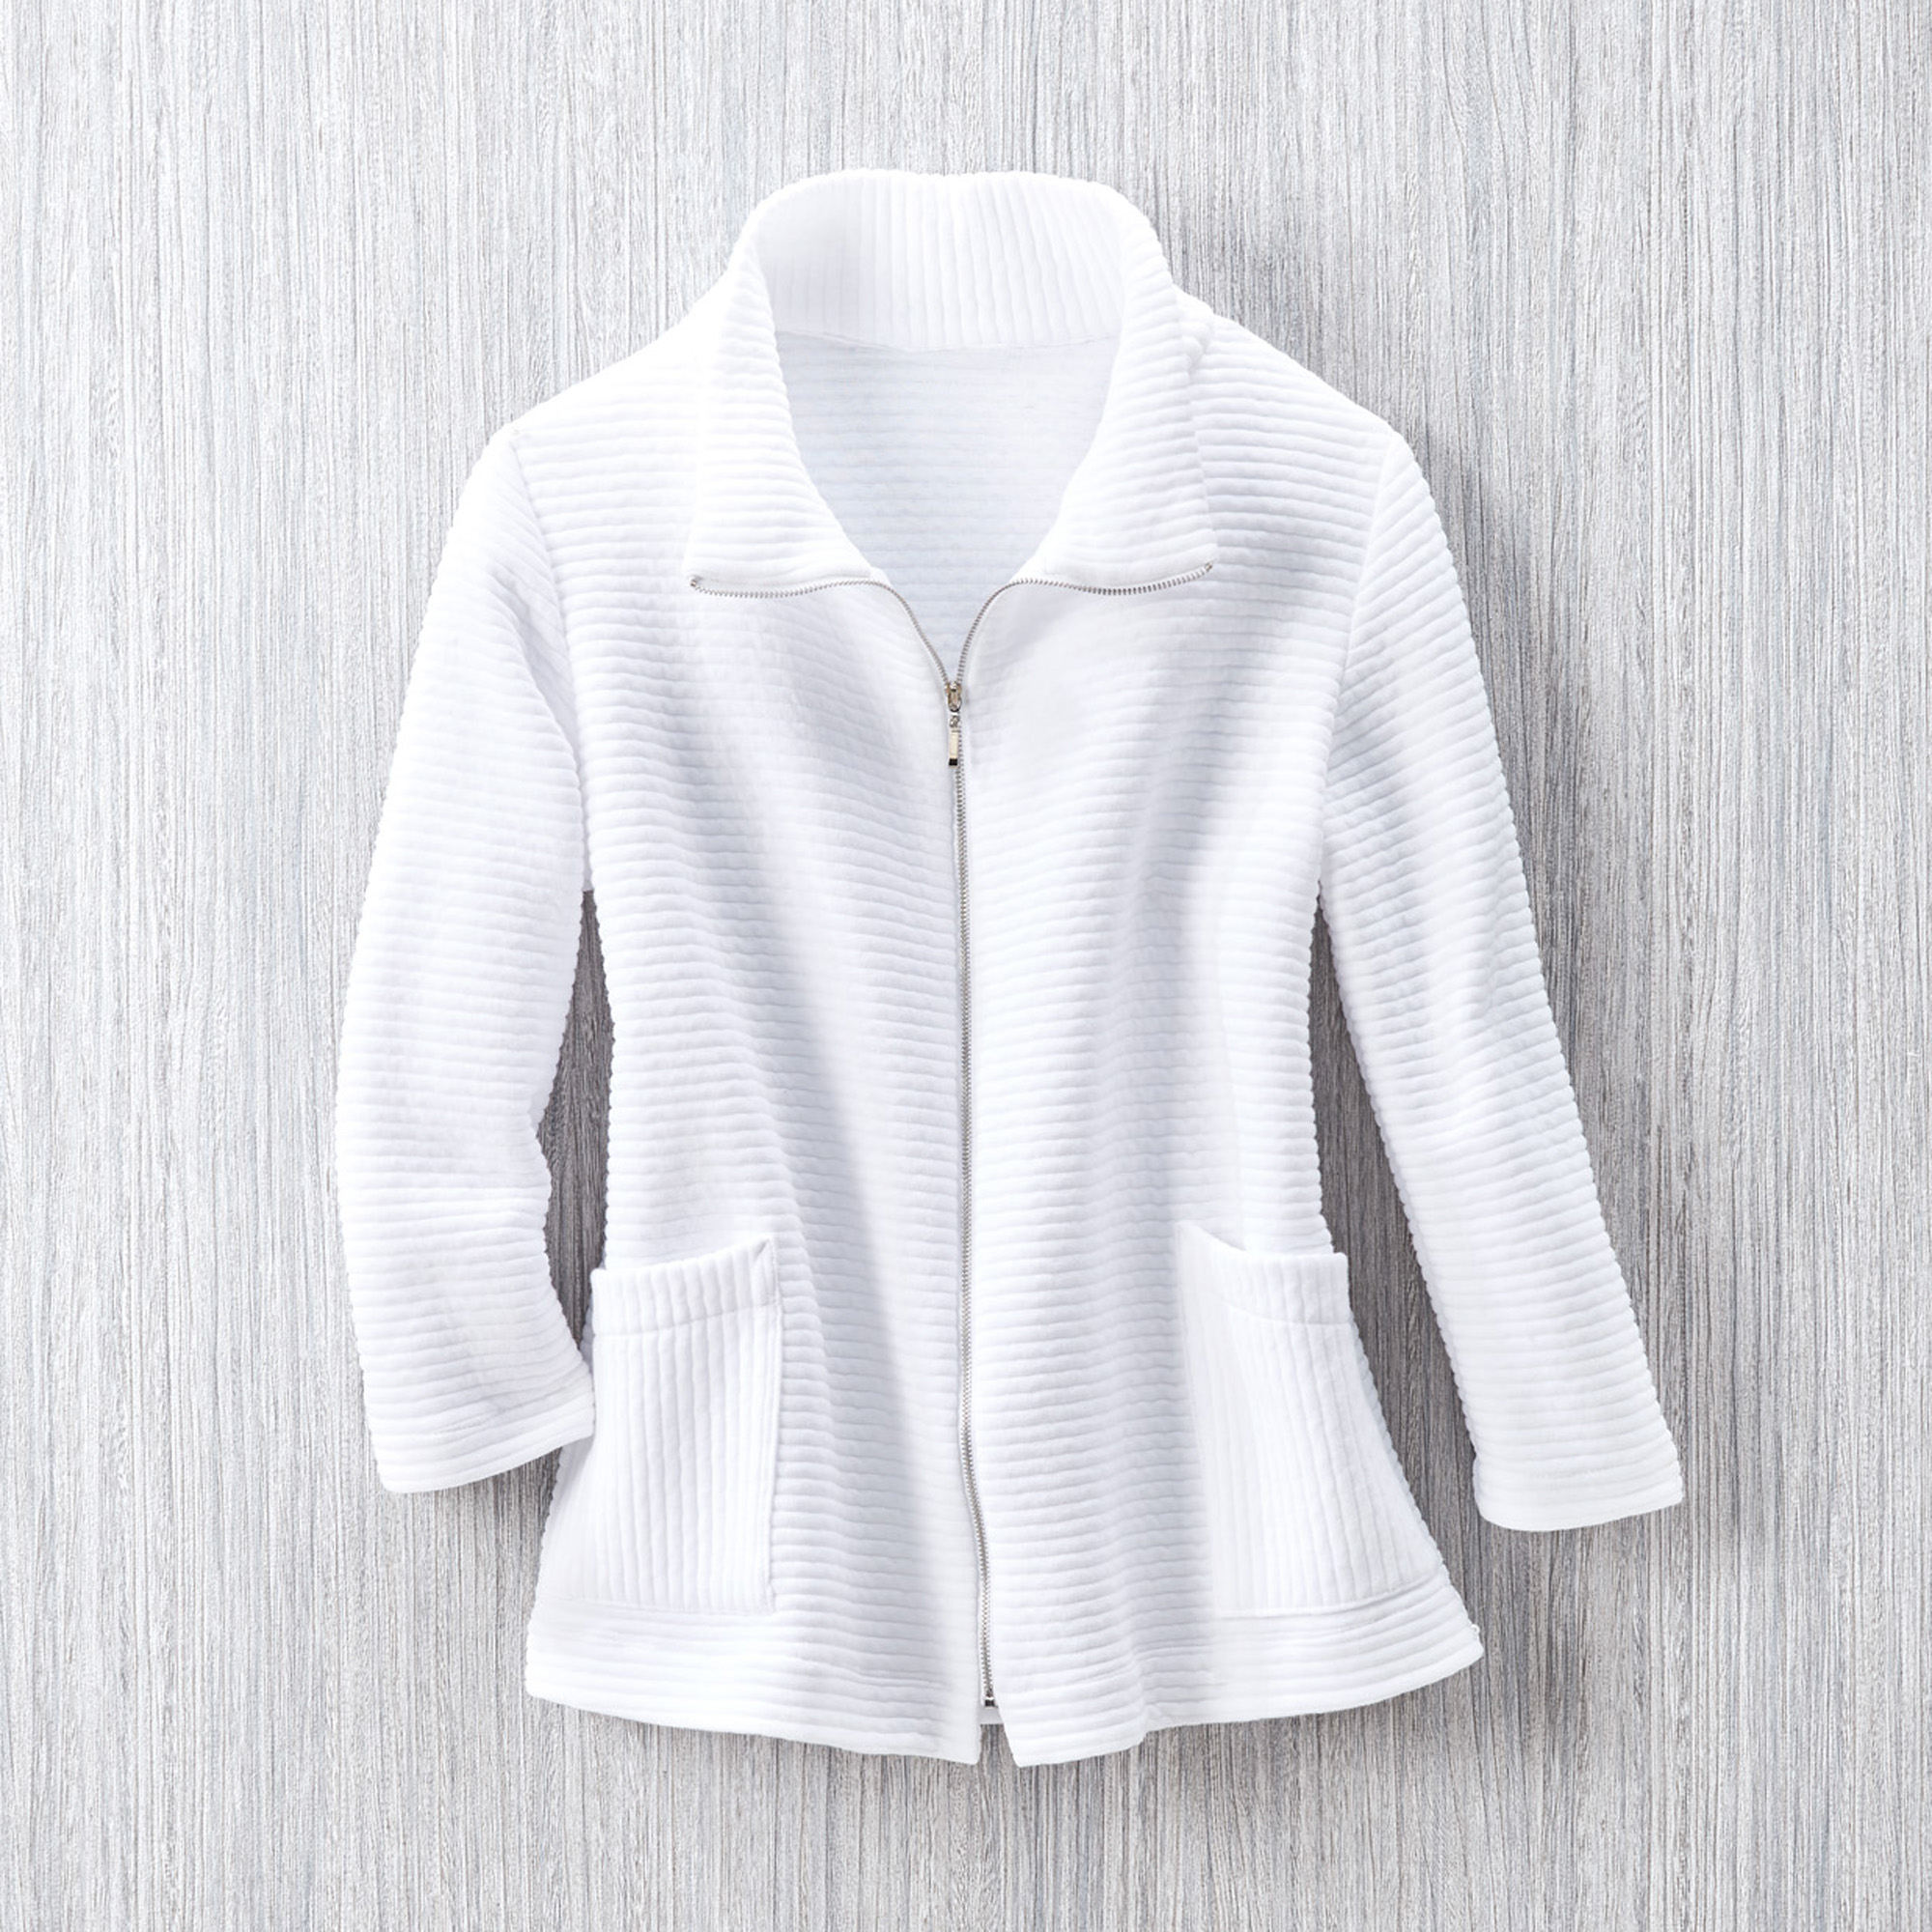 Karen Luu Lounge Collection Textured Jacket